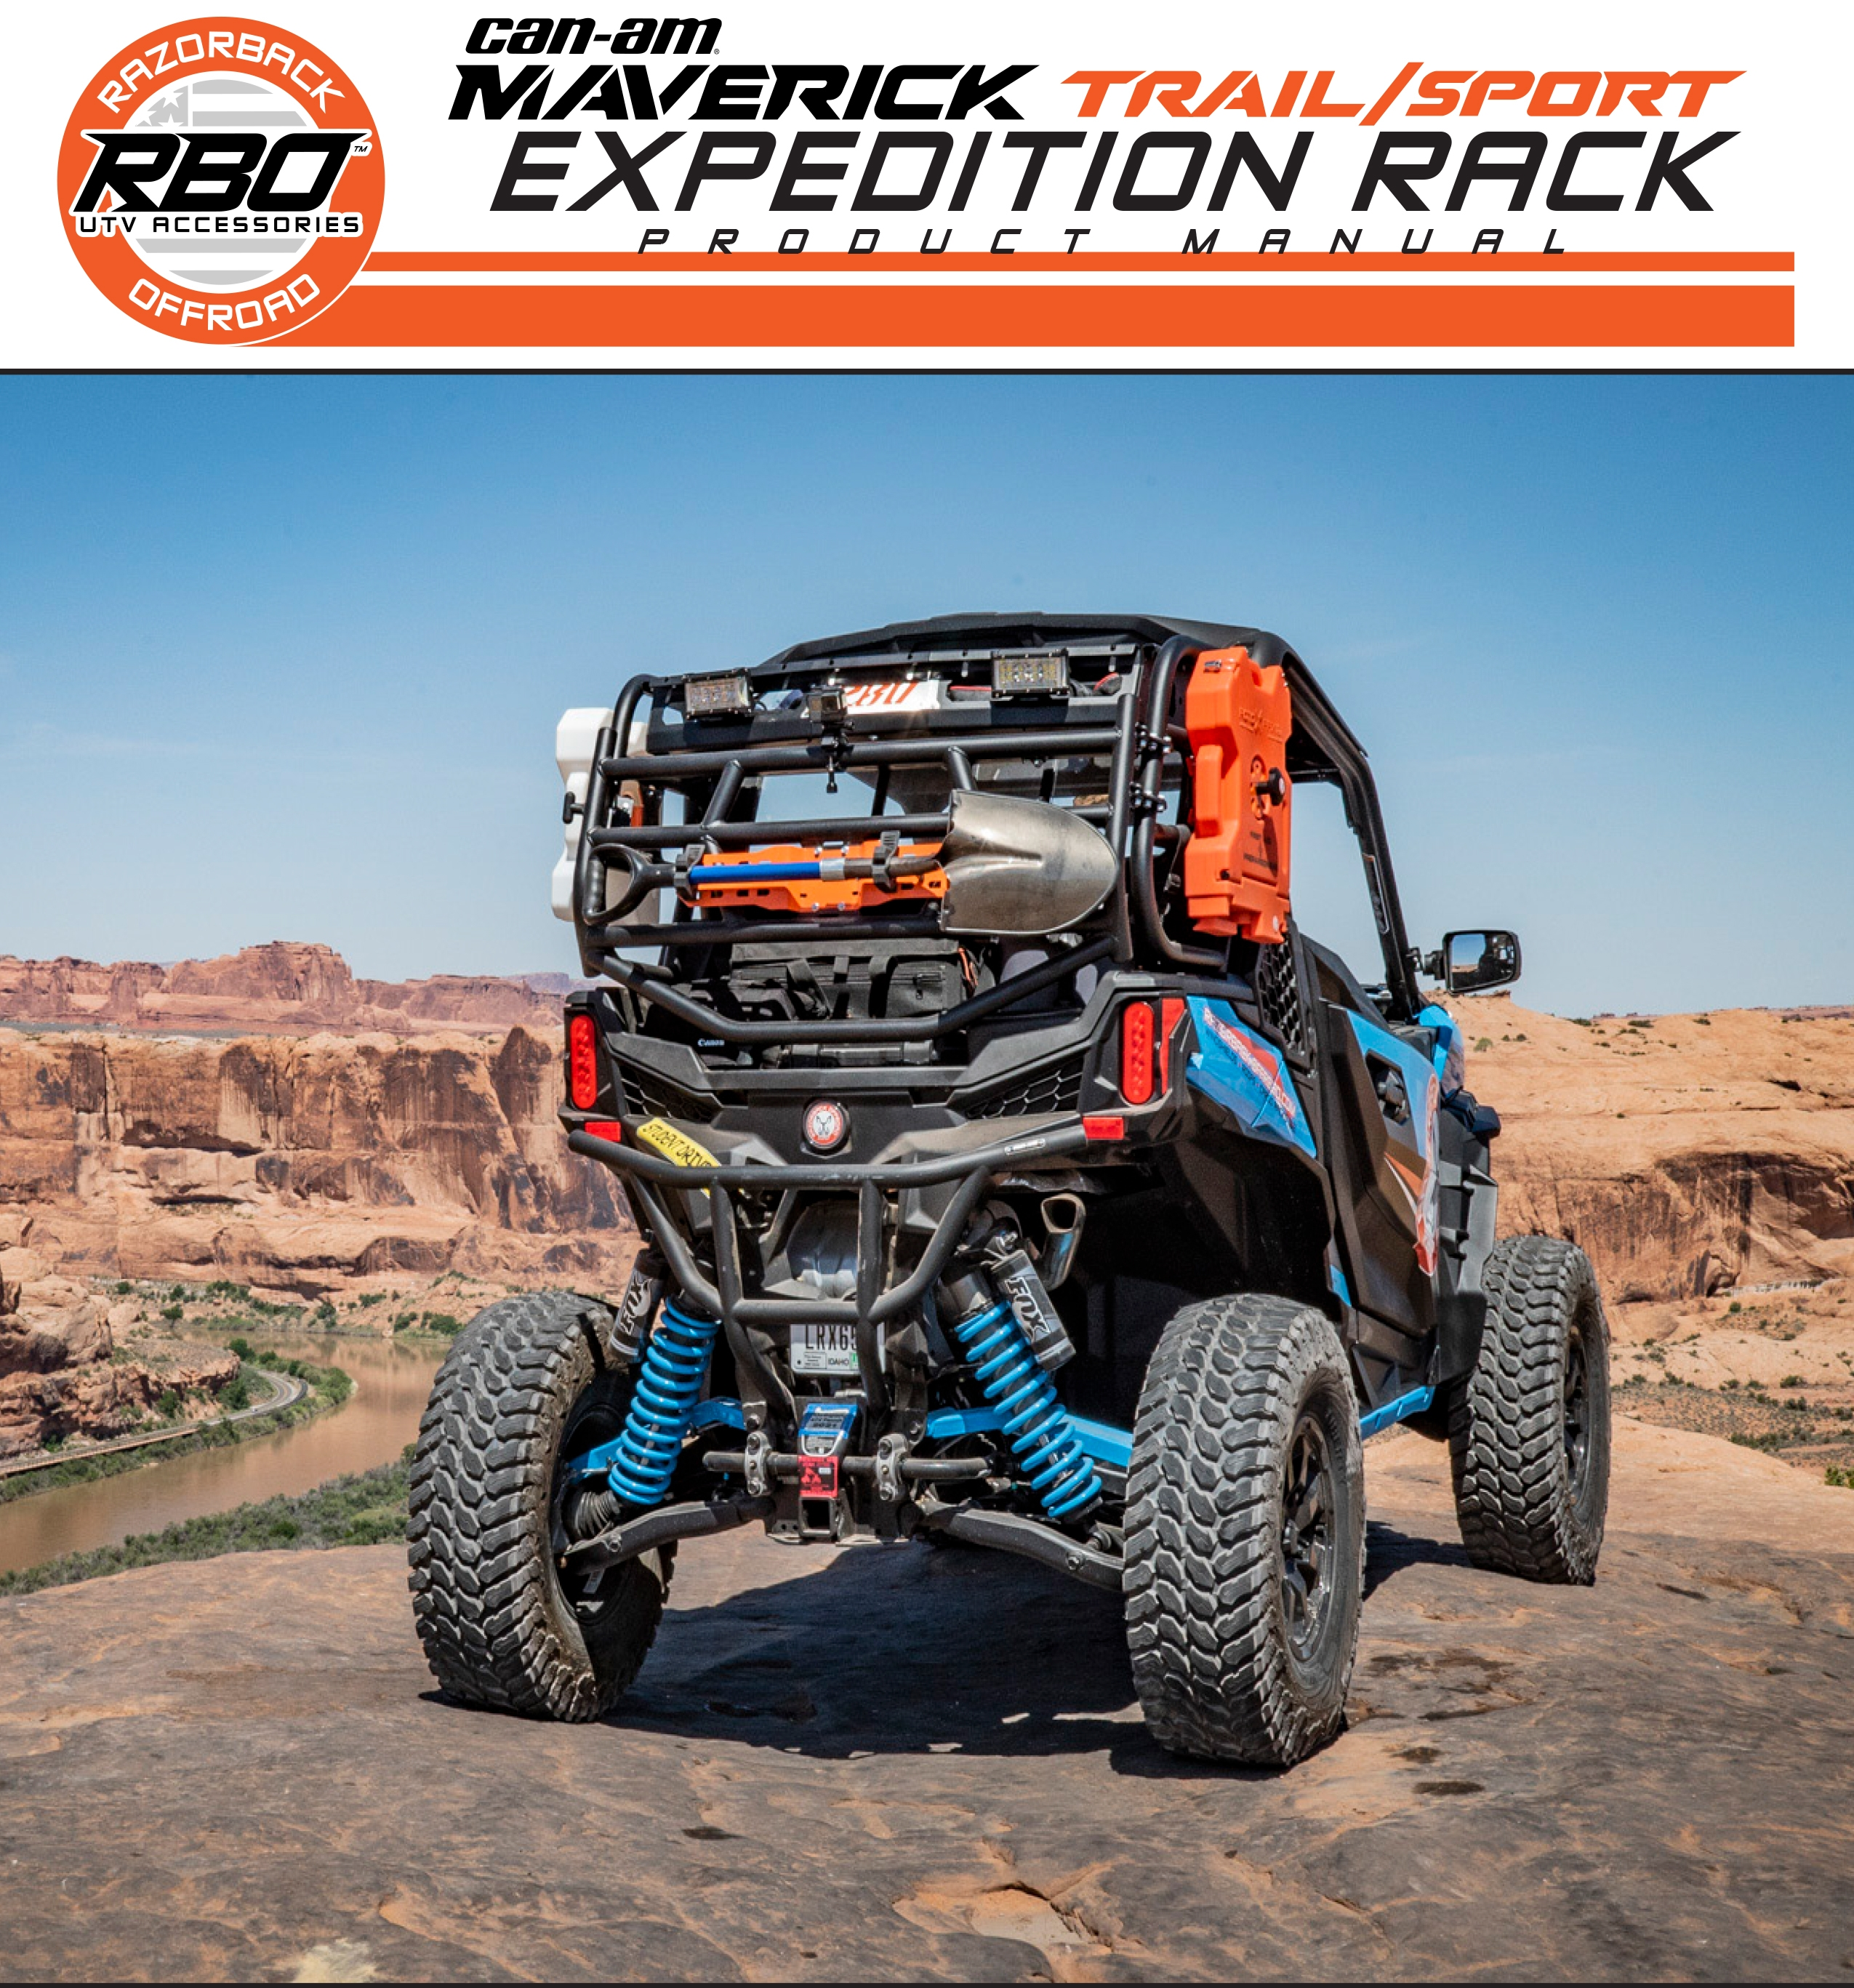 RBO Can-Am Maverick Trail and Sport Expedition Rack Product Manual